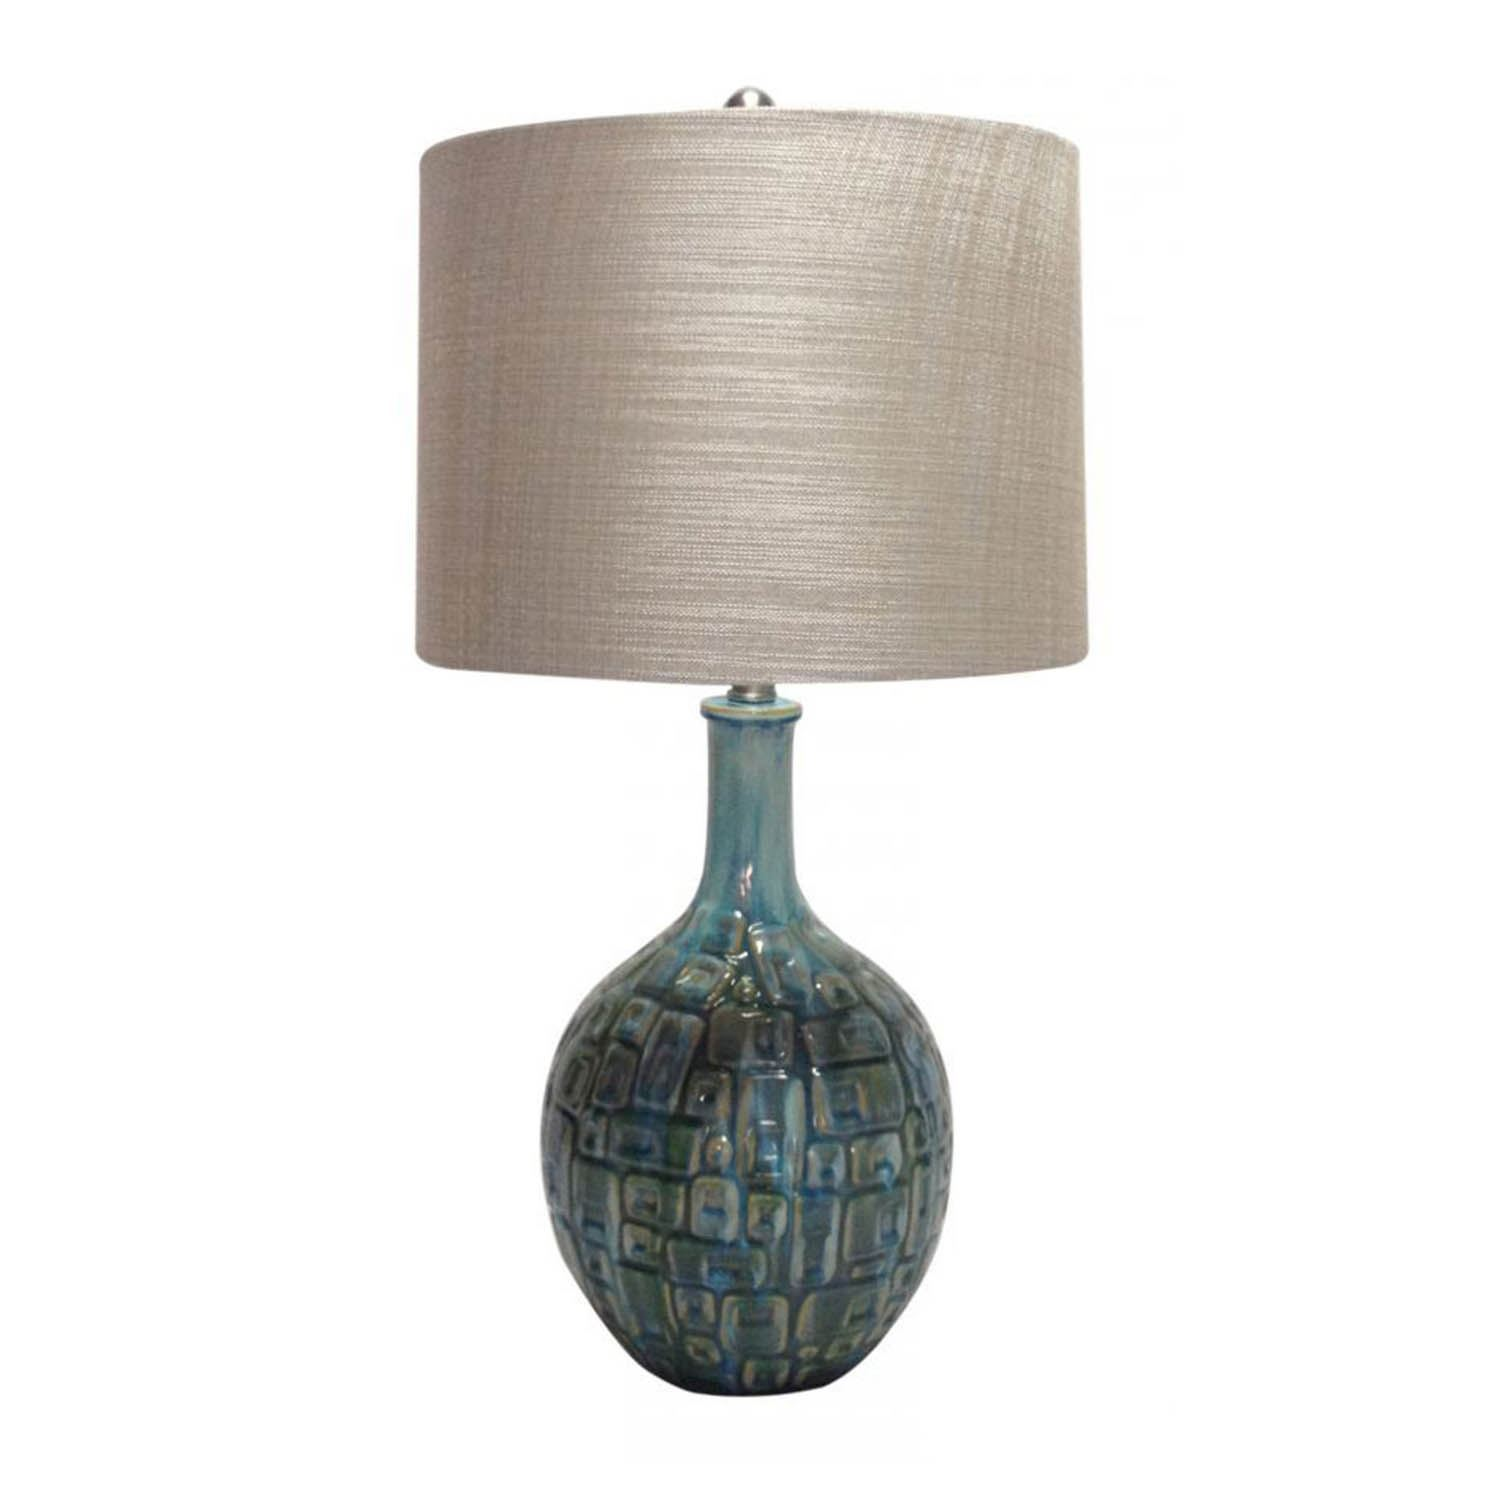 Teal Ceramic Table Lamp Rt10981 Hmh Direct Afw